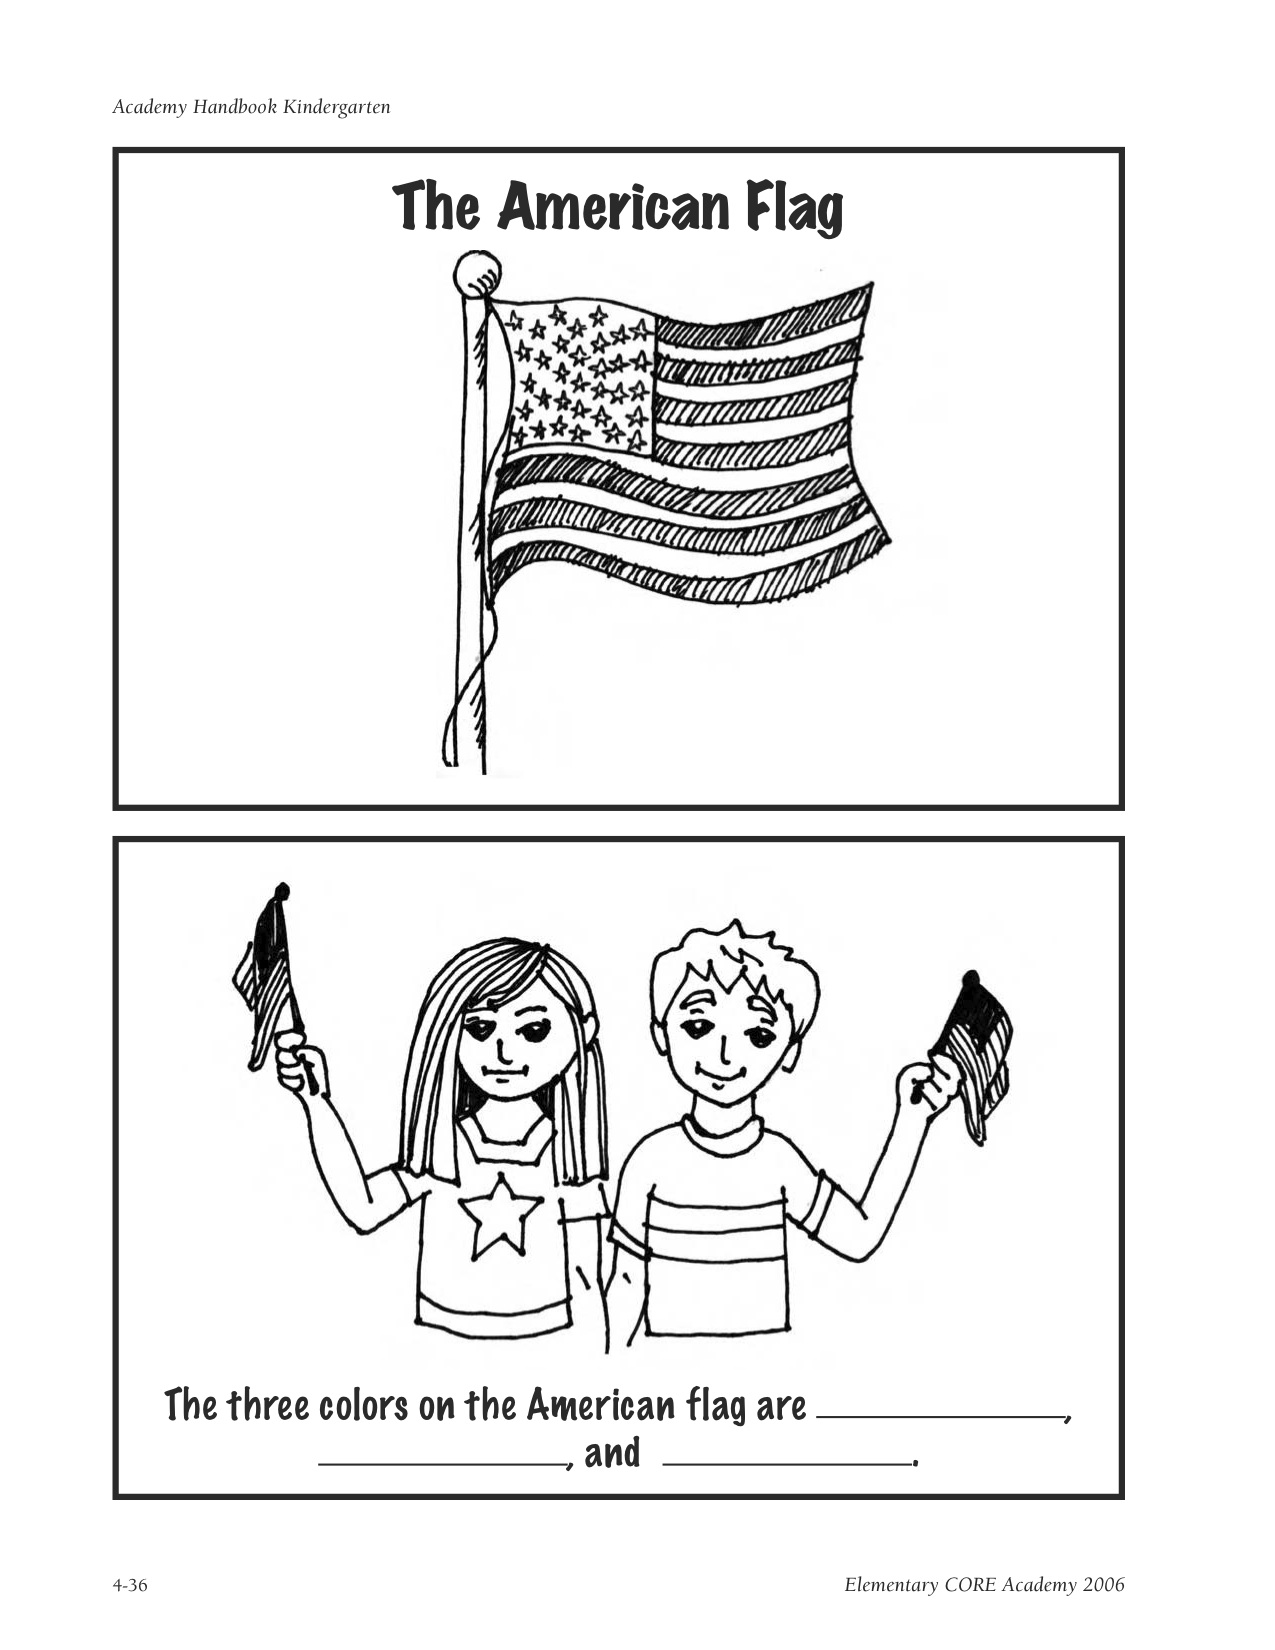 Adult Top Pledge Of Allegiance Coloring Page Images cute kindergarten flag related keywords suggestions long tail images